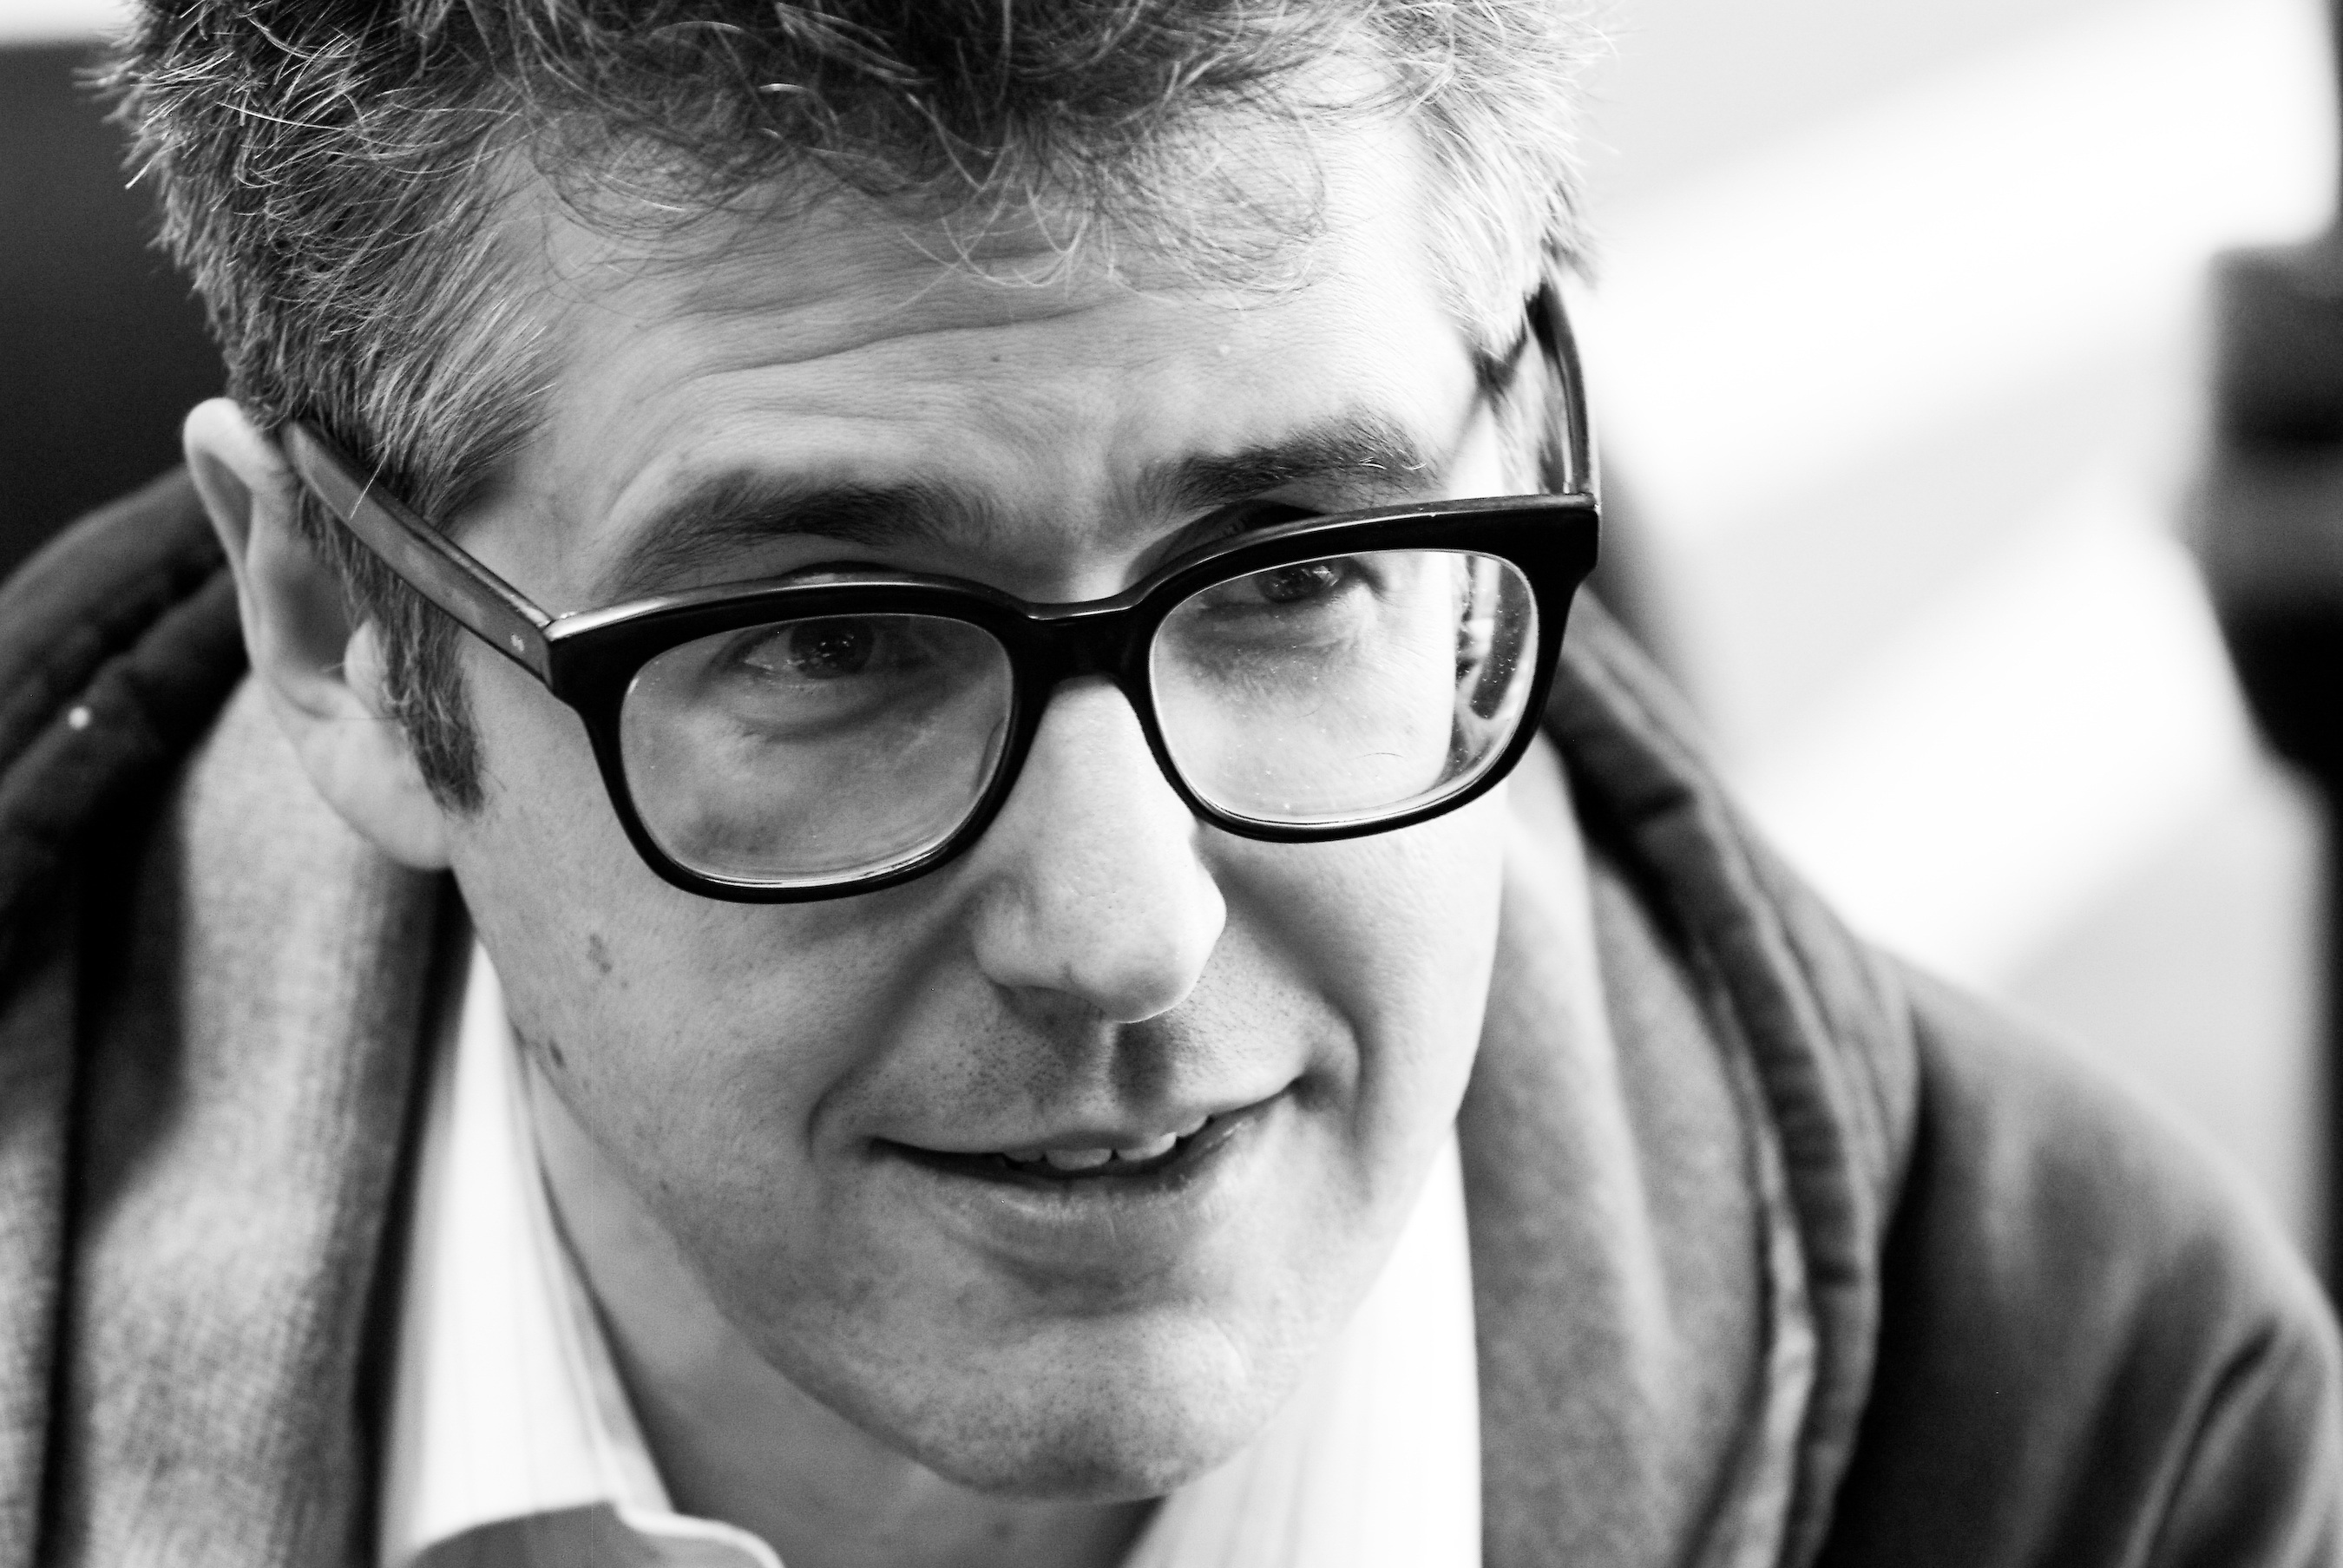 Photo: Ira Glass for Breckenridge International Festival of Arts